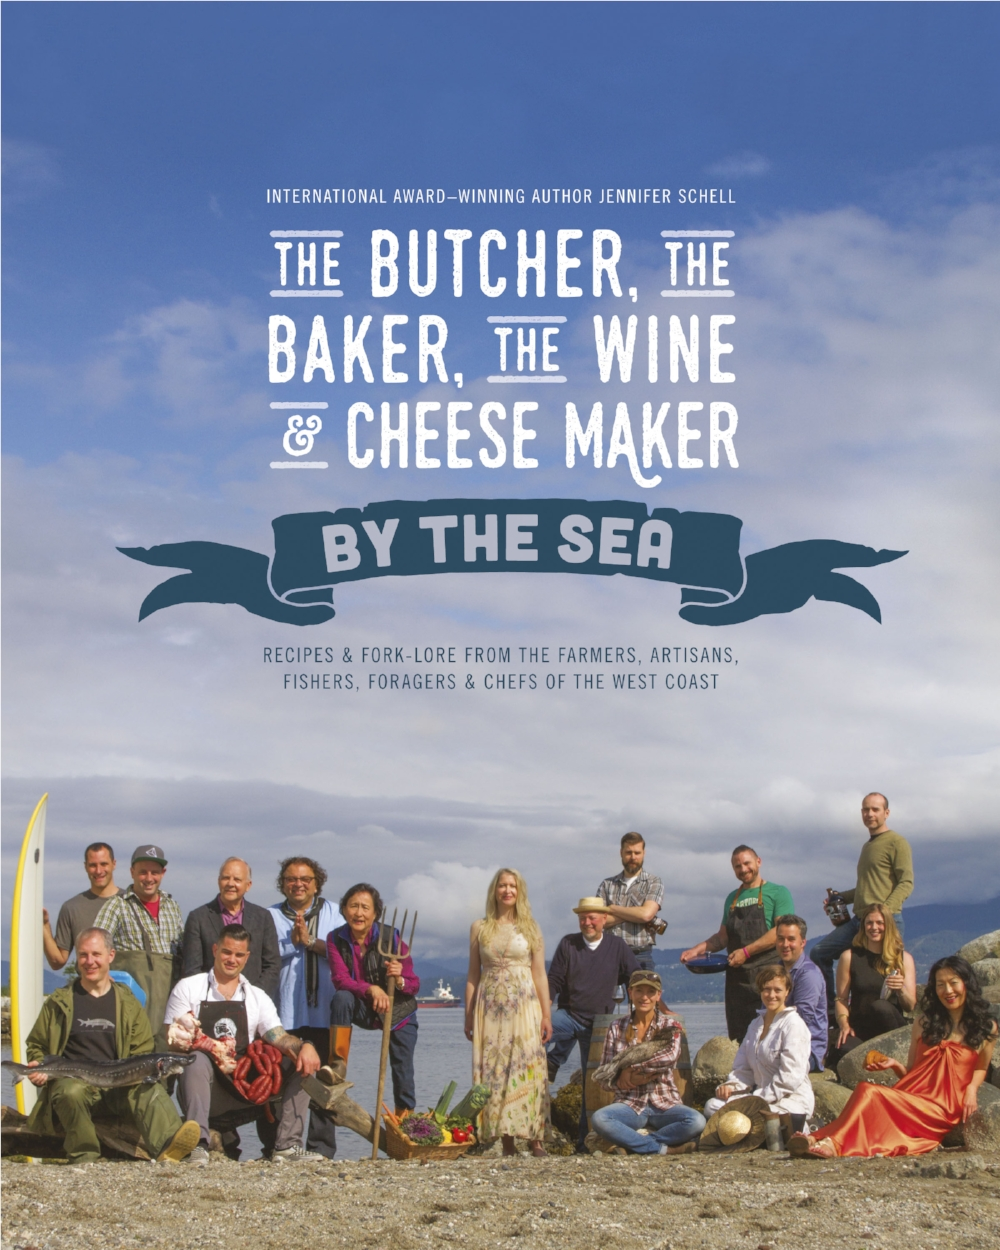 Laid out in the same style, the 2nd cookbook was a celebration of the community on BC's beautiful West Coast.